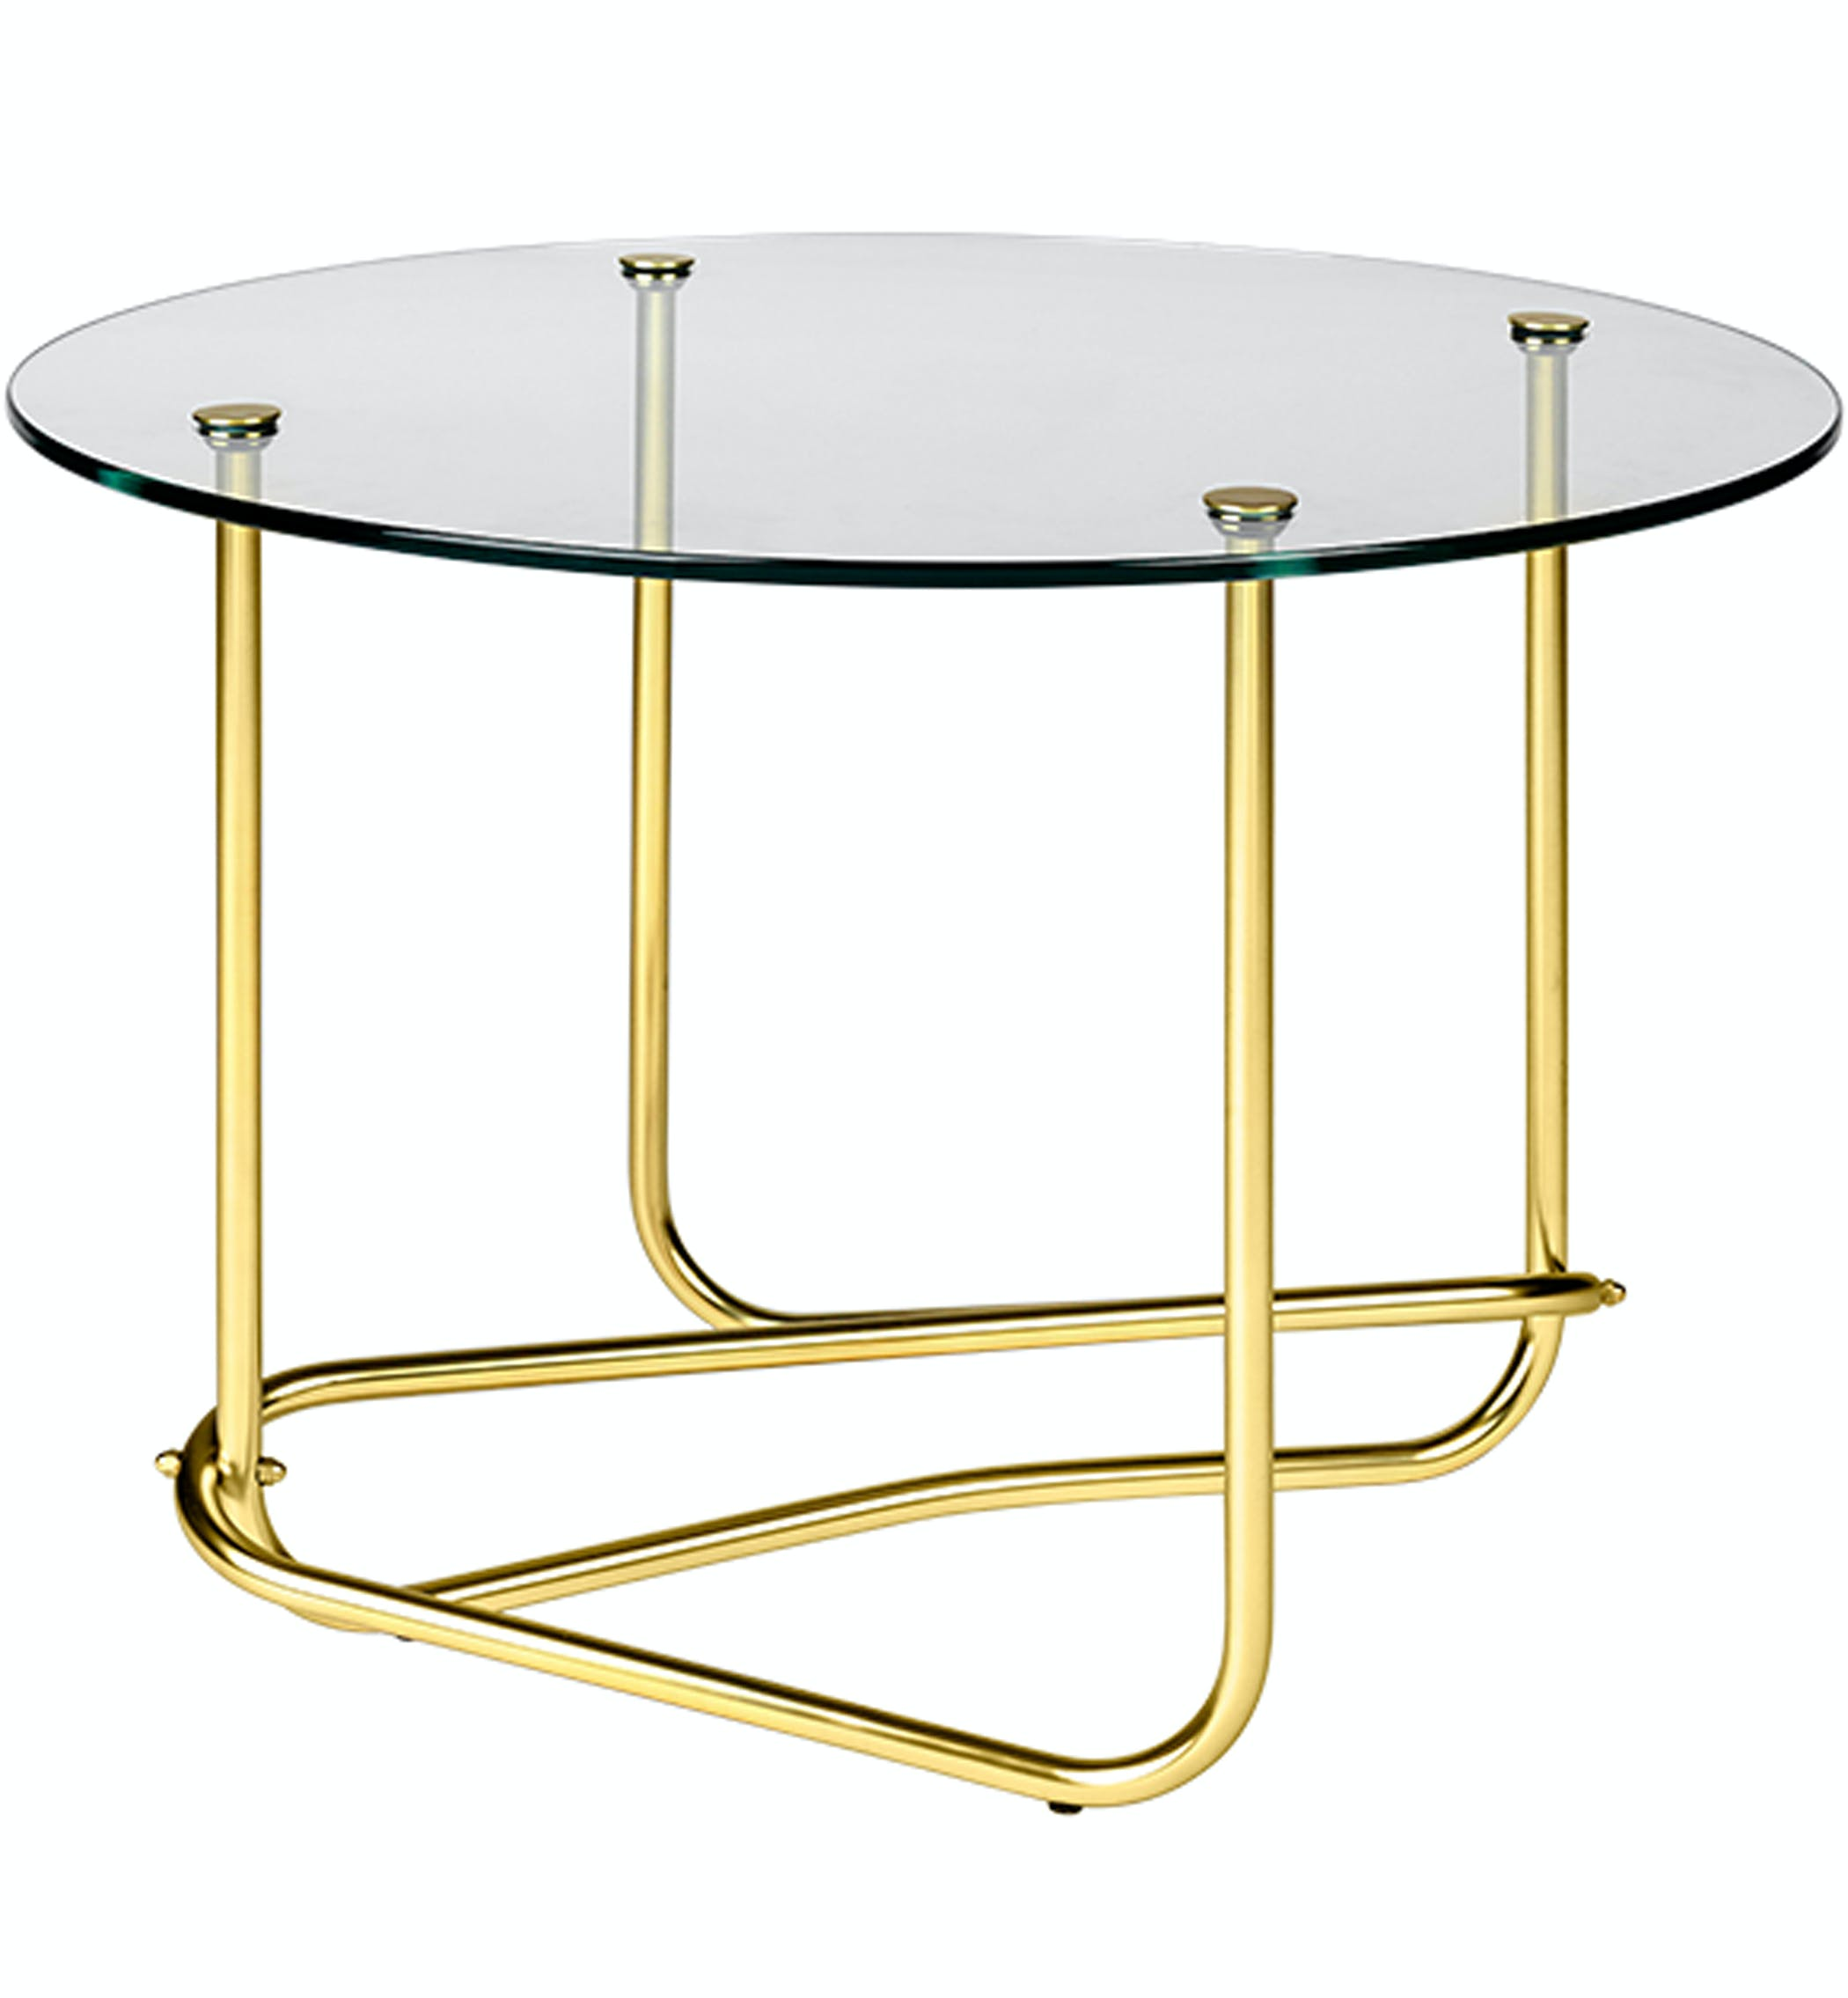 Mategot Coffeetable Clearglass Side Image